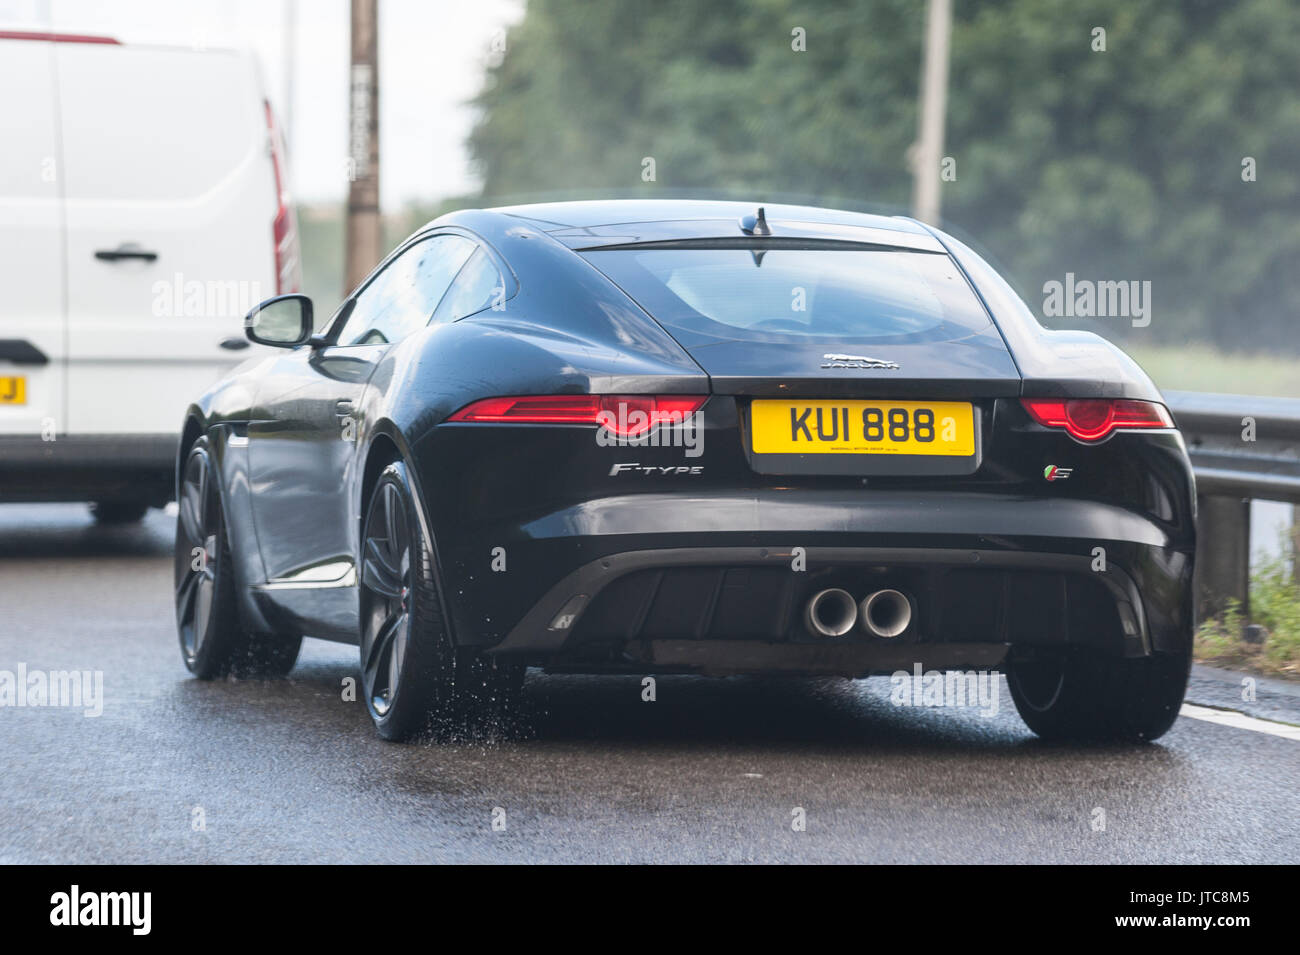 A Black Jaguar F Type Sports Car Driving In The Wet On A Main Road In Stock Photo Alamy